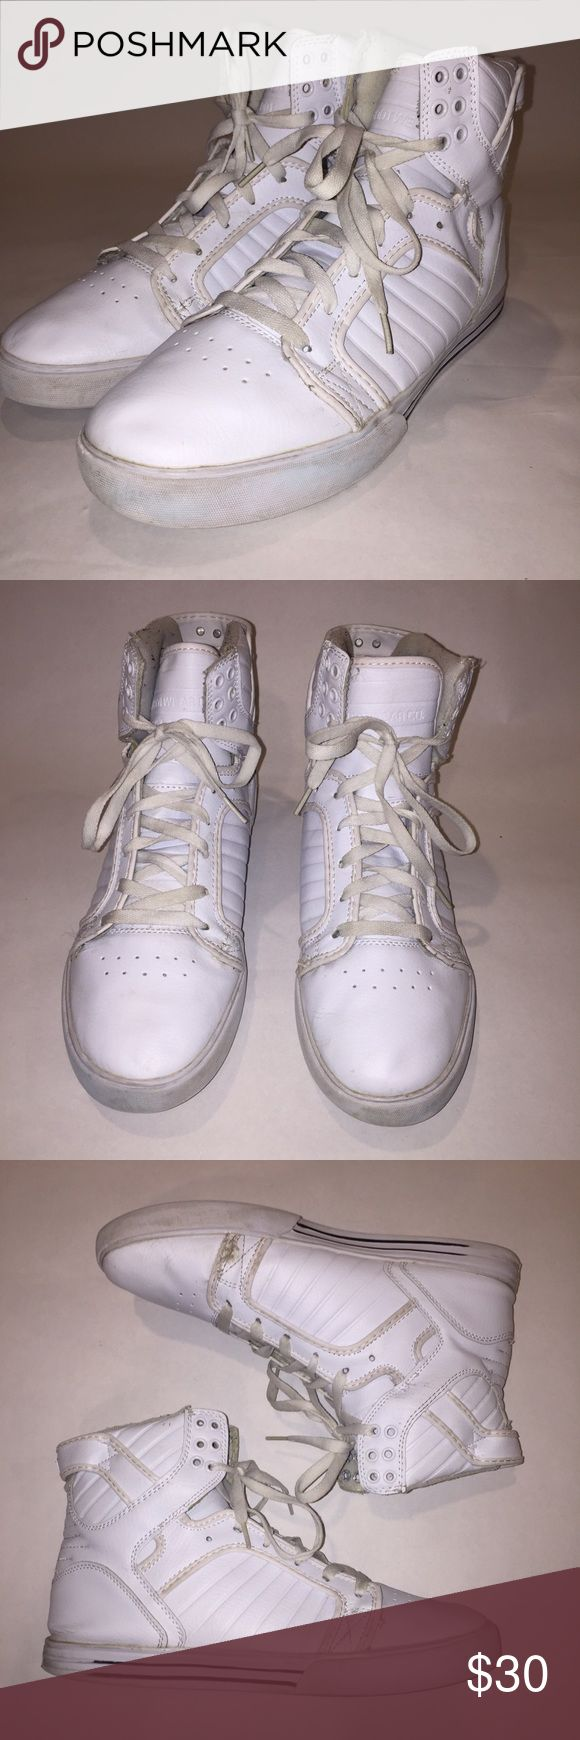 Supra Chad Muska 001 High Tops Supra Chad Muska 001 High Tops in white. Size 12. Used condition, but could been easily cleaned. See photos above for details Supra Shoes Sneakers